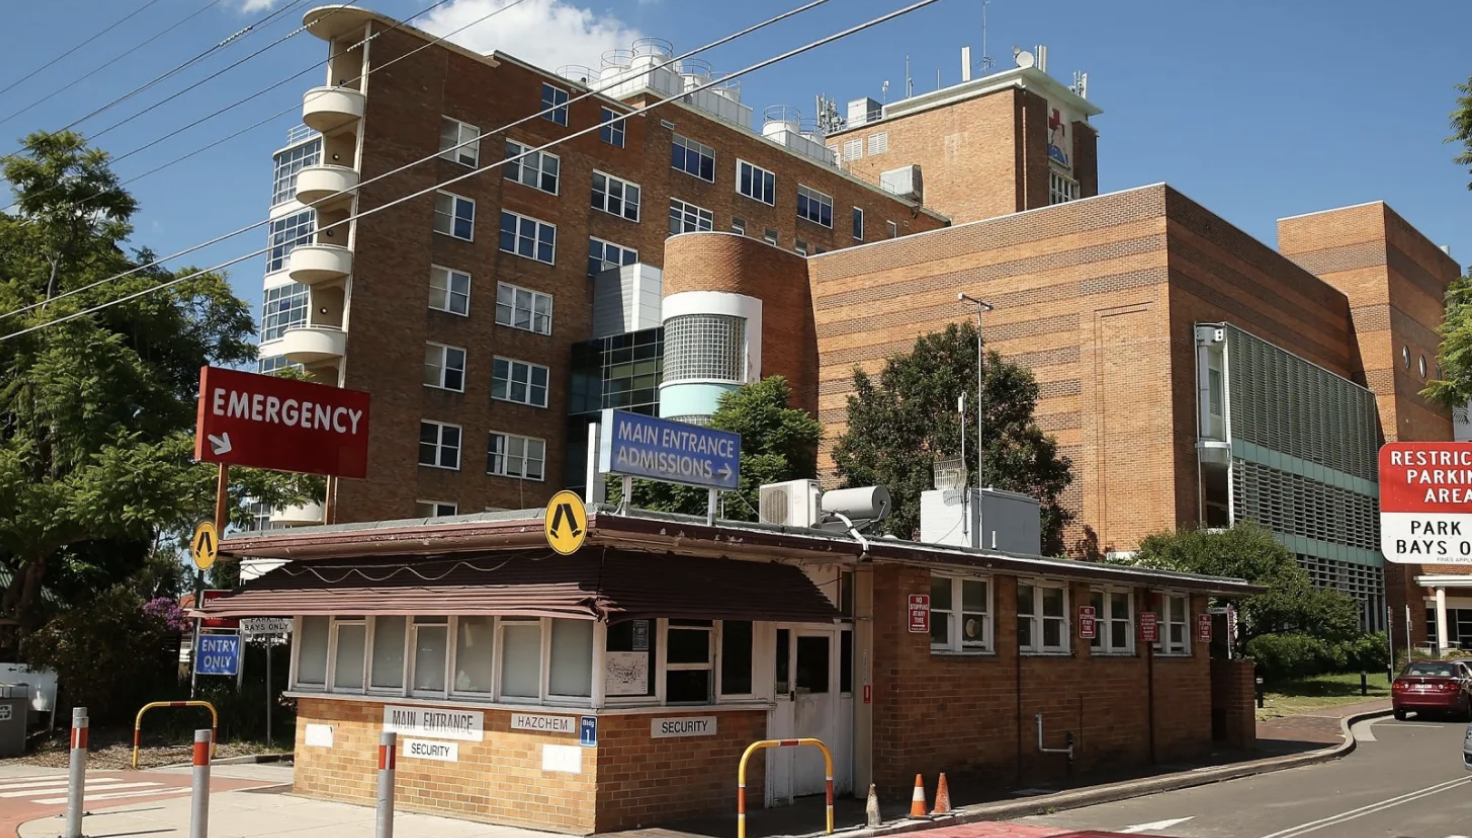 Built in 1941, the redevelopment of Concord Hospital is overdue.